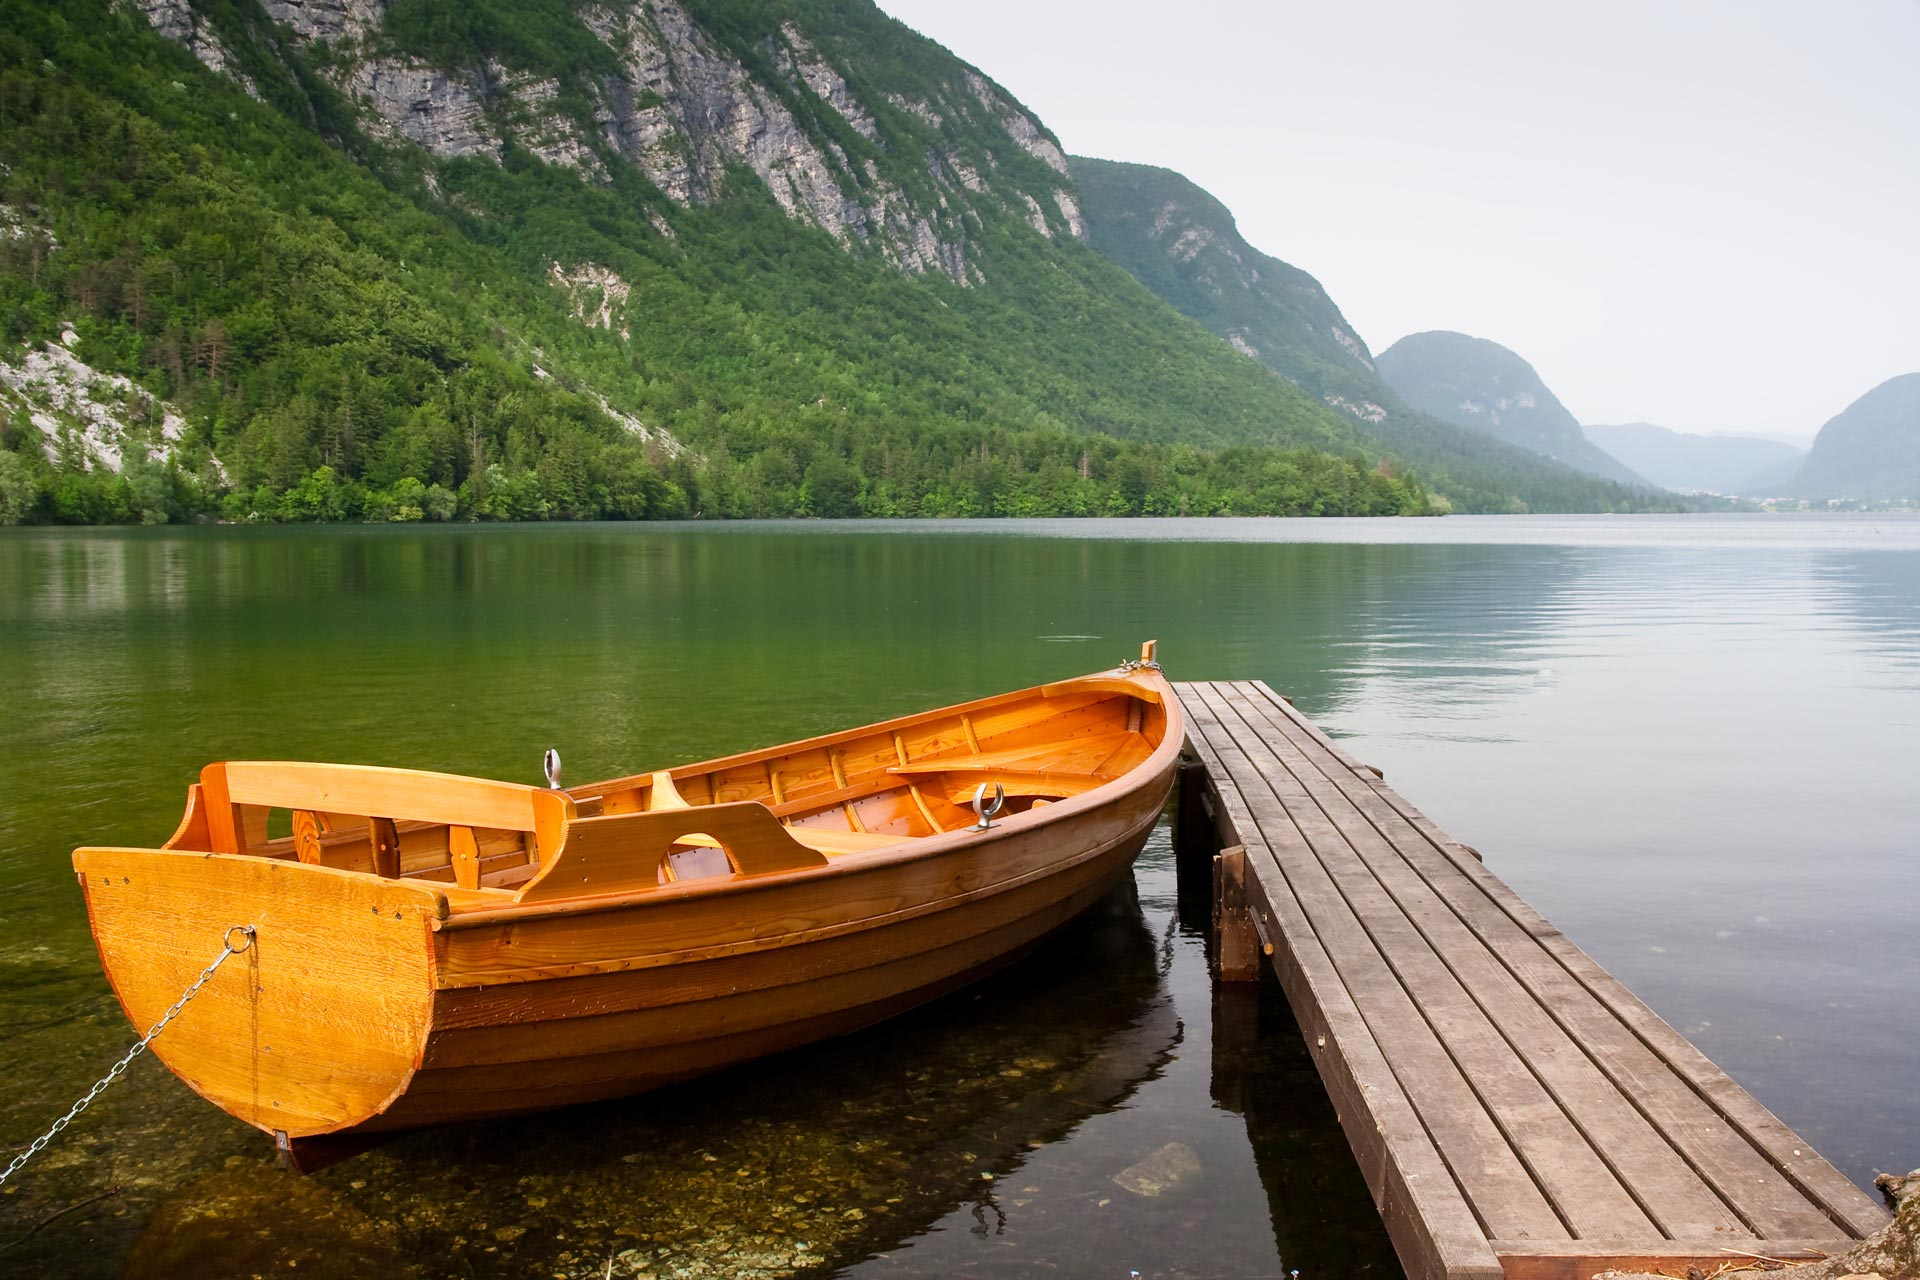 boat berth on the shore of bohinj lake in Slovenia with mountain as background. This photo truly expresses the tranquility and unsploit nature of the eastern europe country.